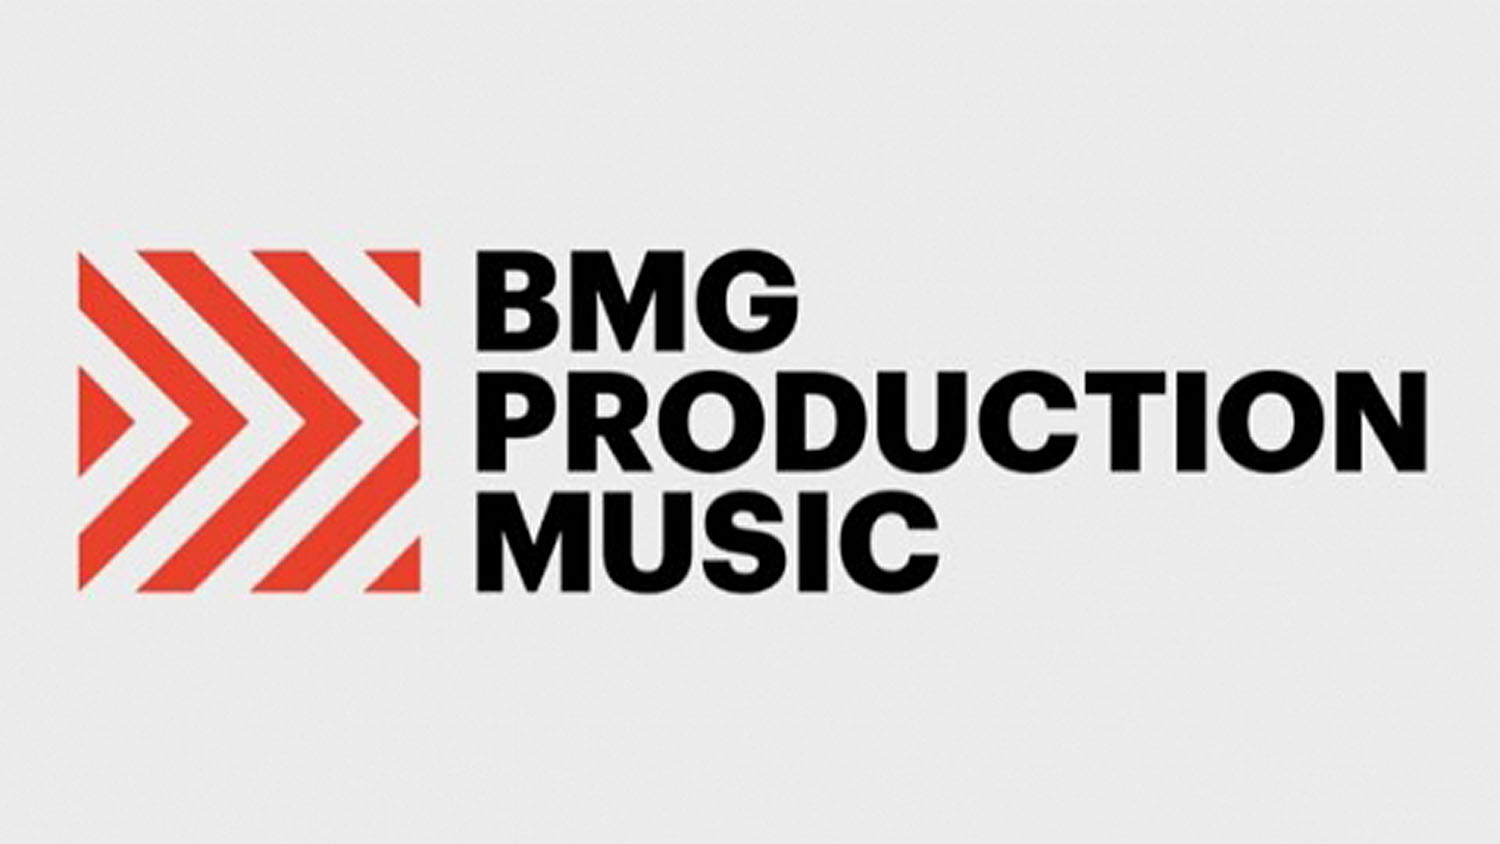 BMG Production Music launches rebrand